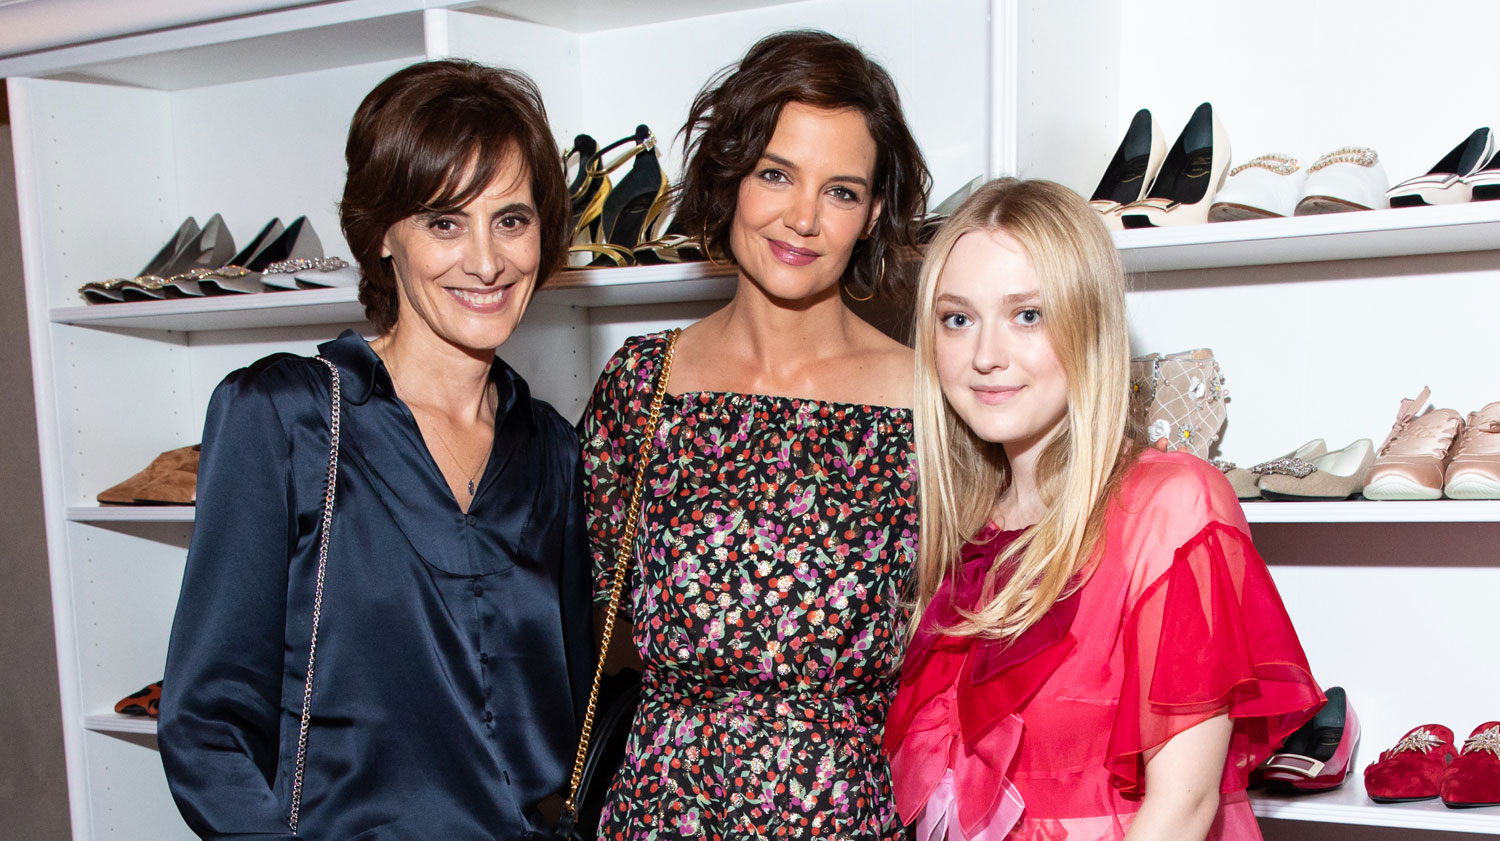 Dakota Fanning & Katie Holmes Celebrate Book Launch of #LoveVivier!